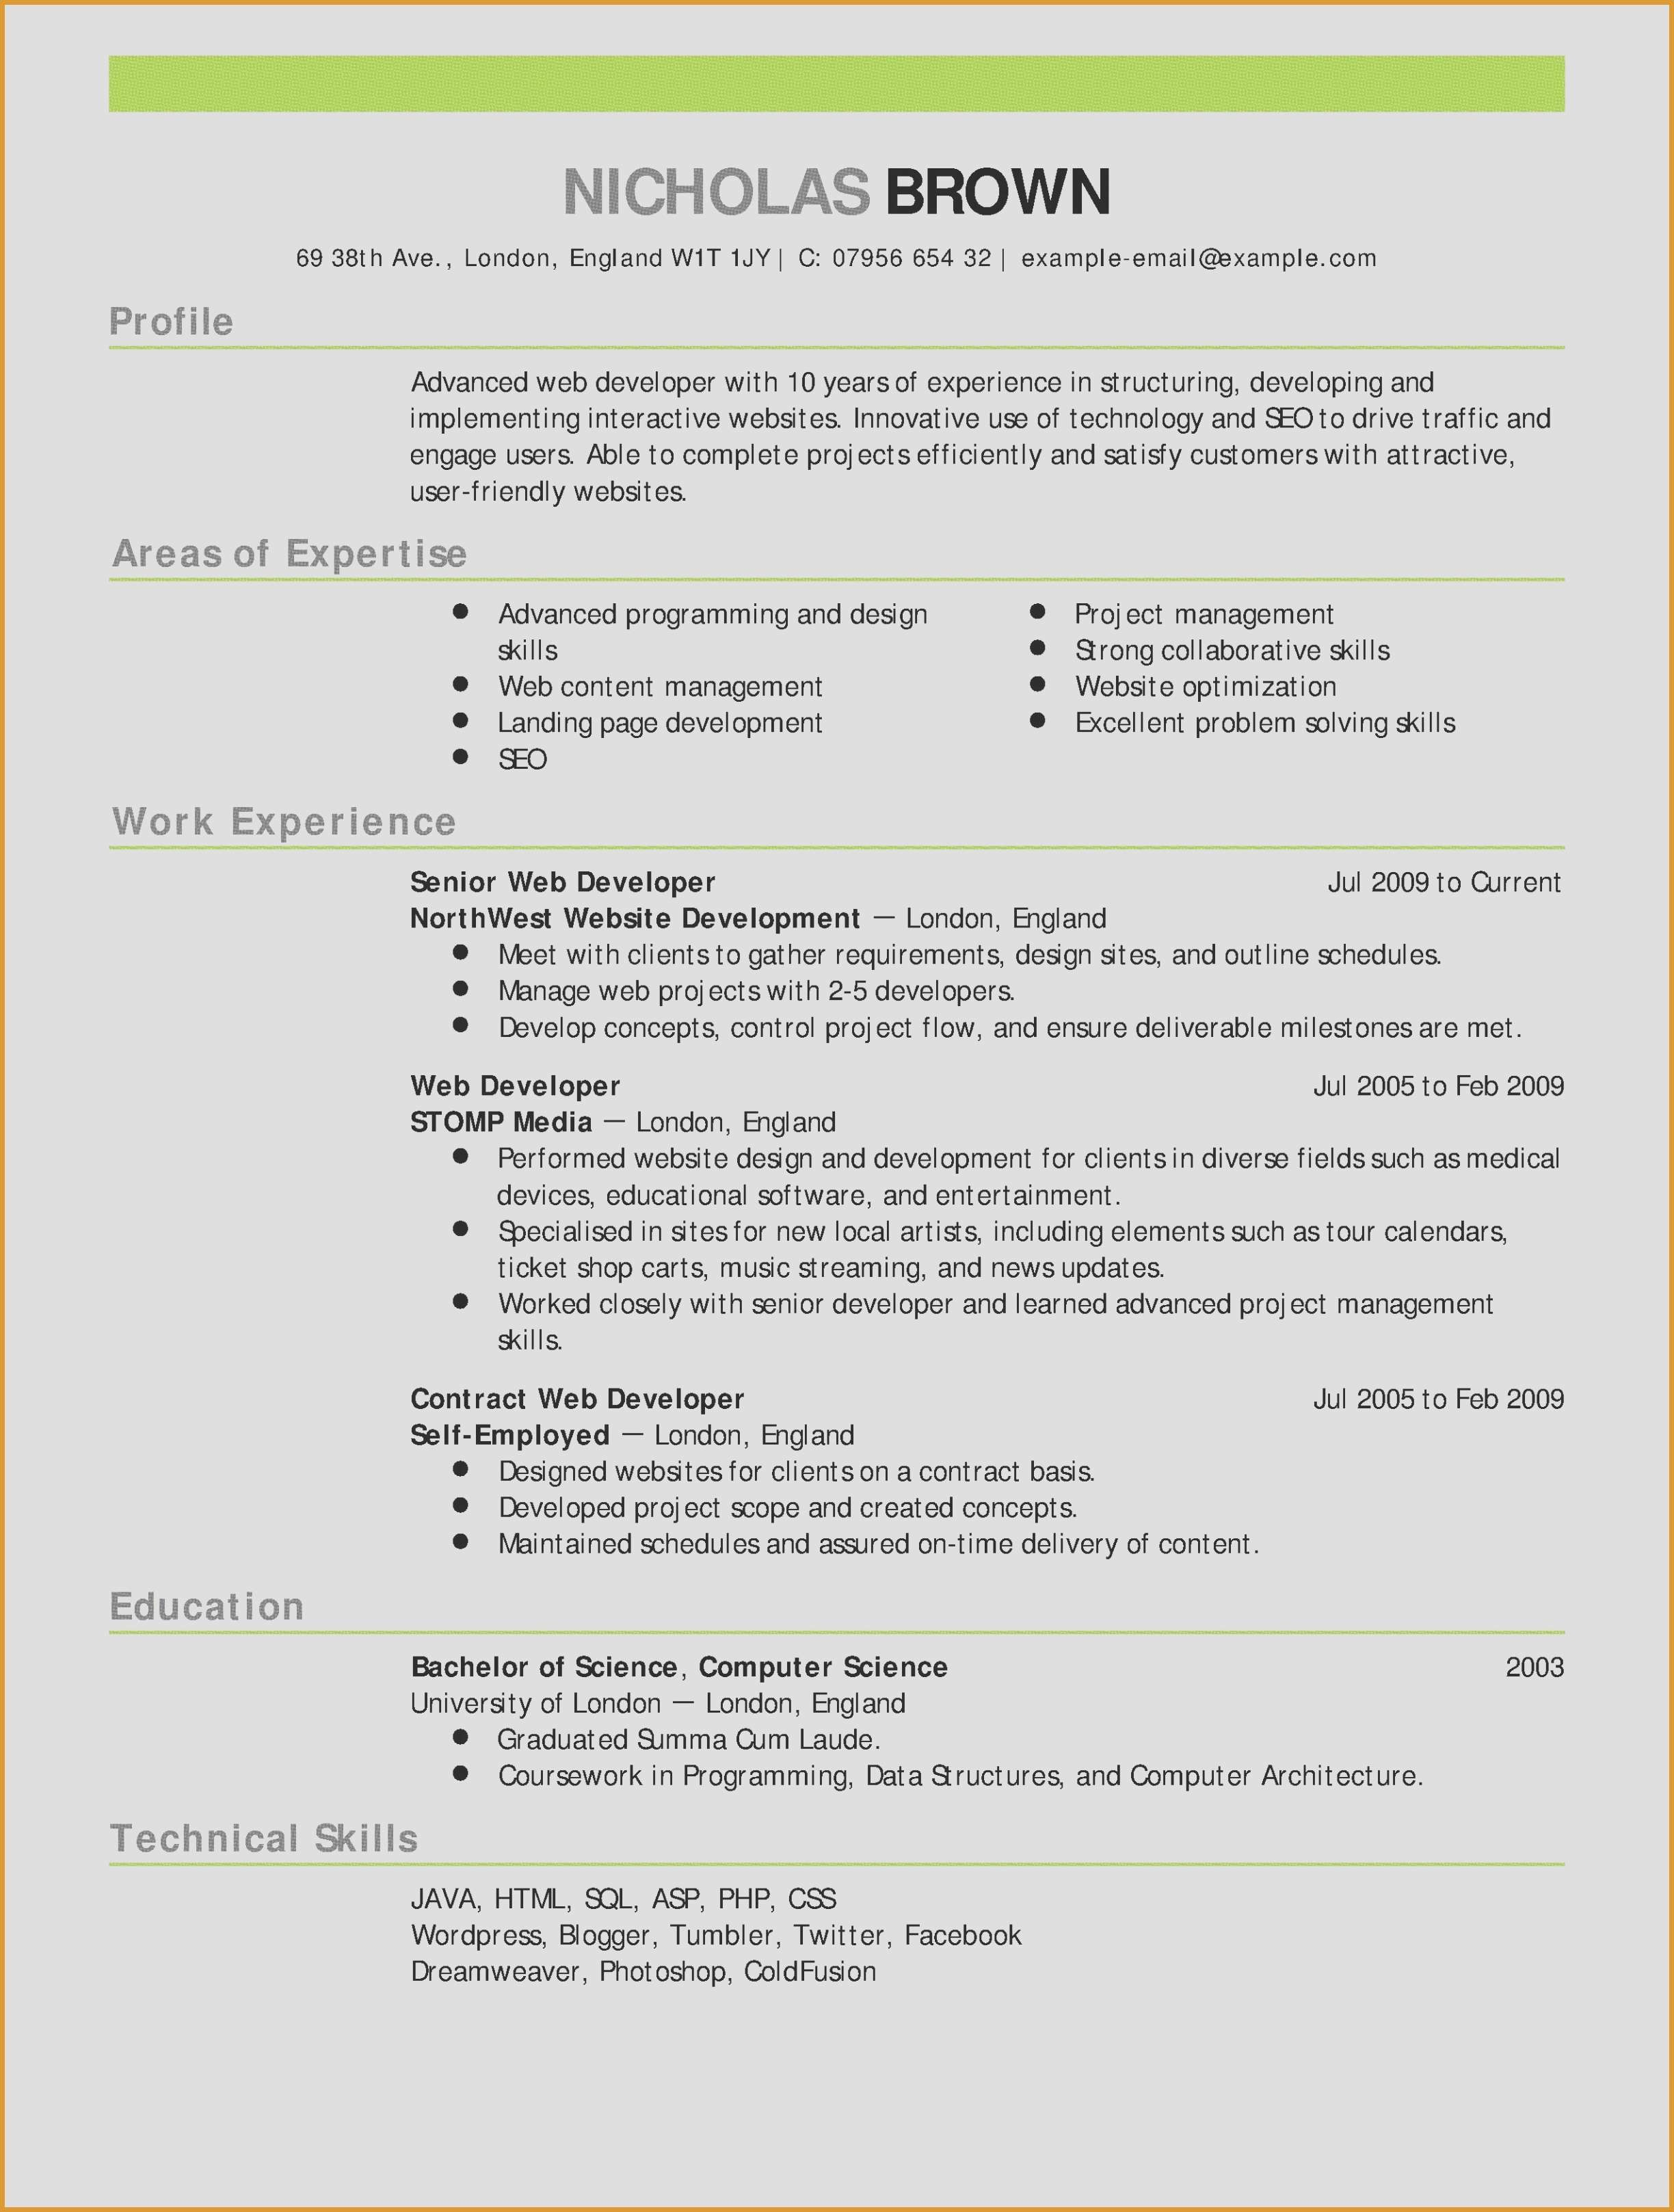 Resume Writer Reviews - Resume Review Services Inspirational Resume Review 0d Wallpapers 42